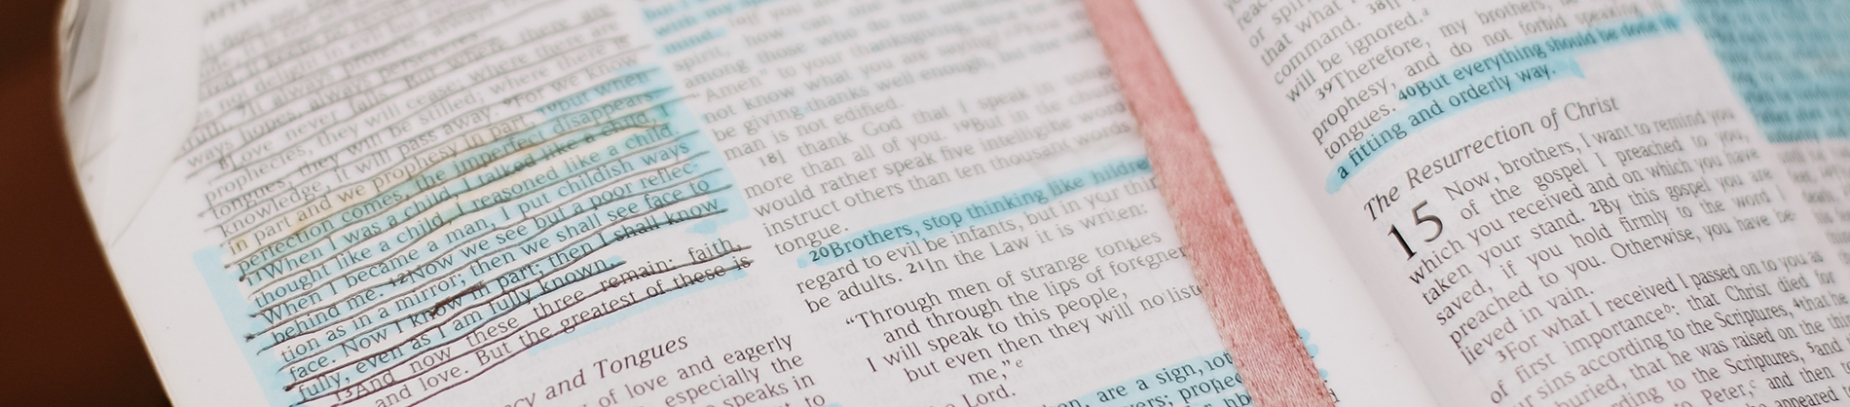 Open bible with highlighted verses